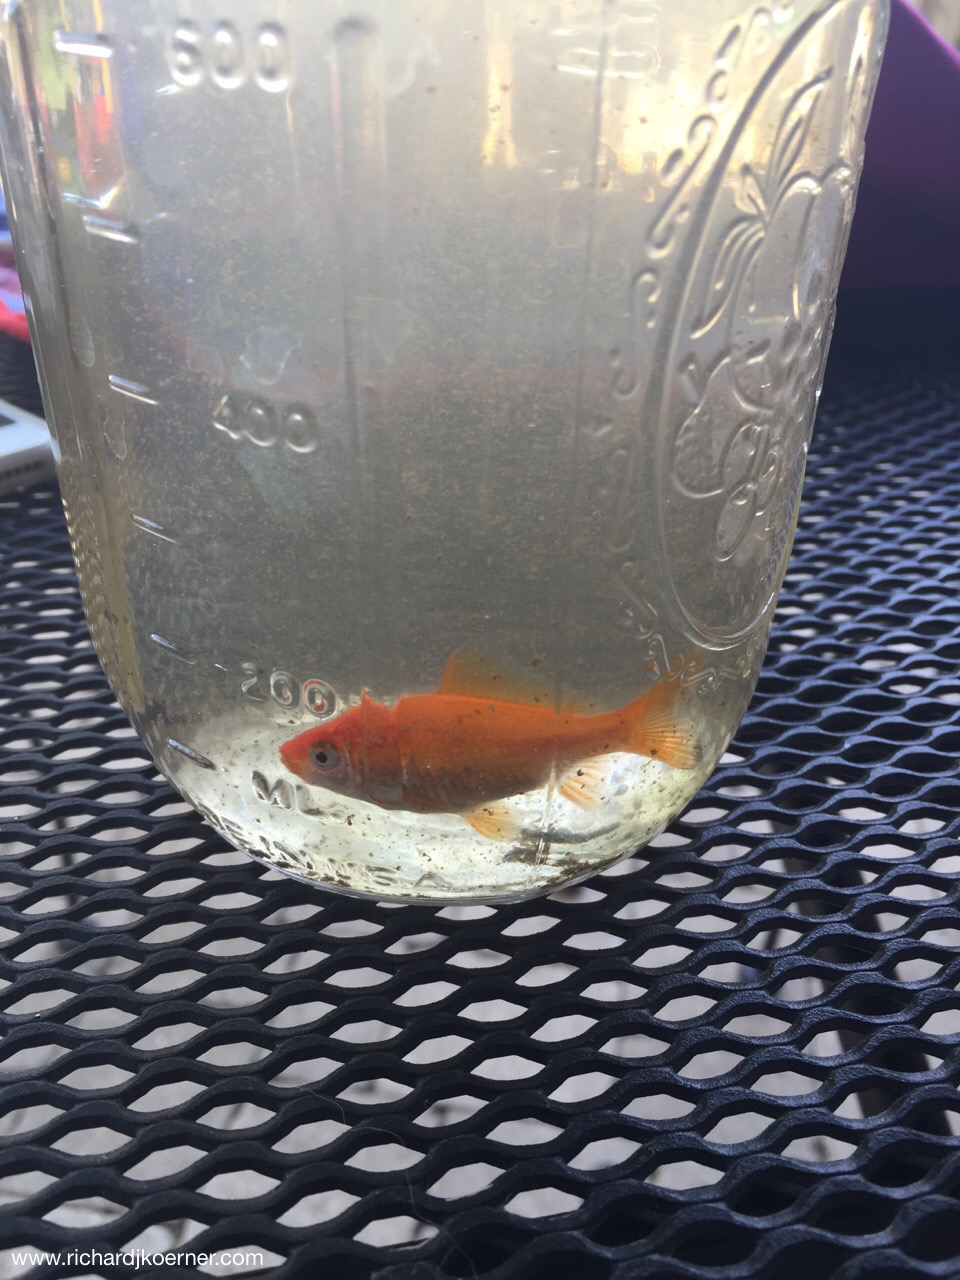 The Glencoe fish 'passed' so this baby born in our back yard a few years ago will be a 'replacement.'